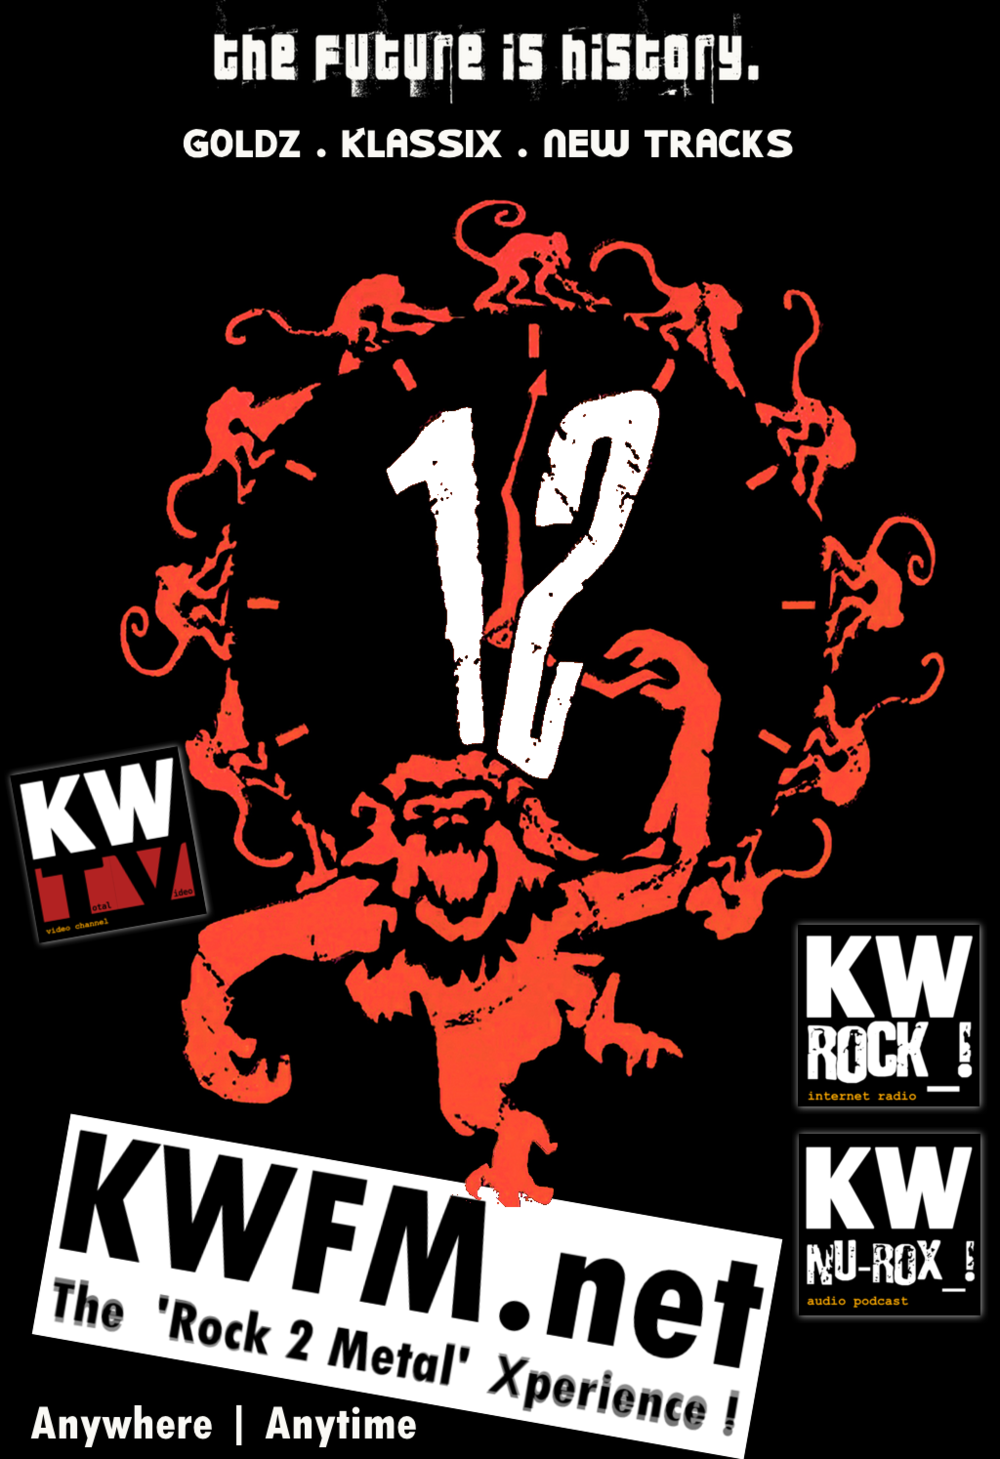 KWFM.net - 12 Yrs Old _ 12 Anos _ 12 Ans _ 12 Anys